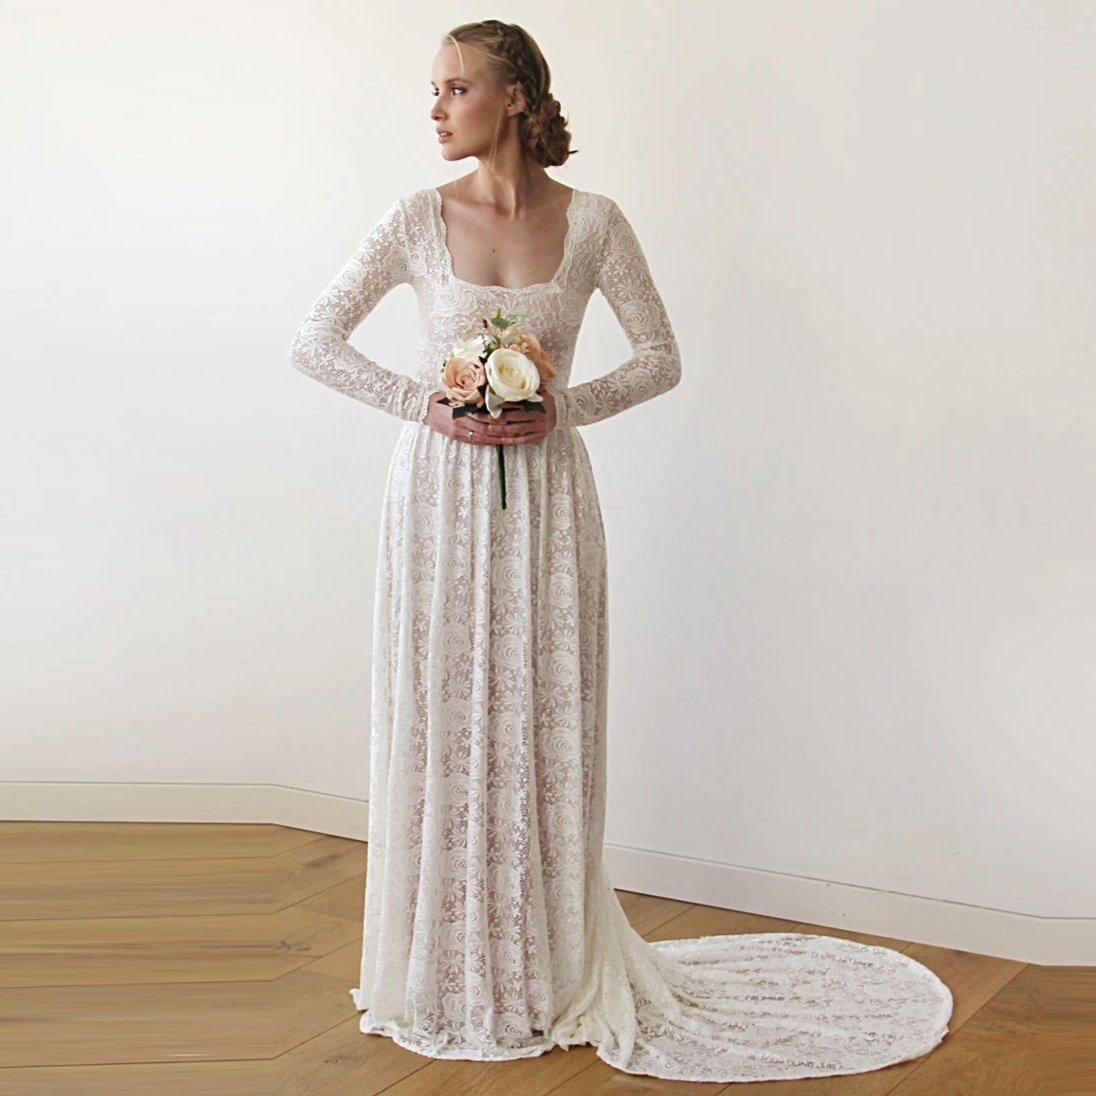 Square Neckline Vintage inspired Pearl Wedding Dress 1207 - Blushfashion